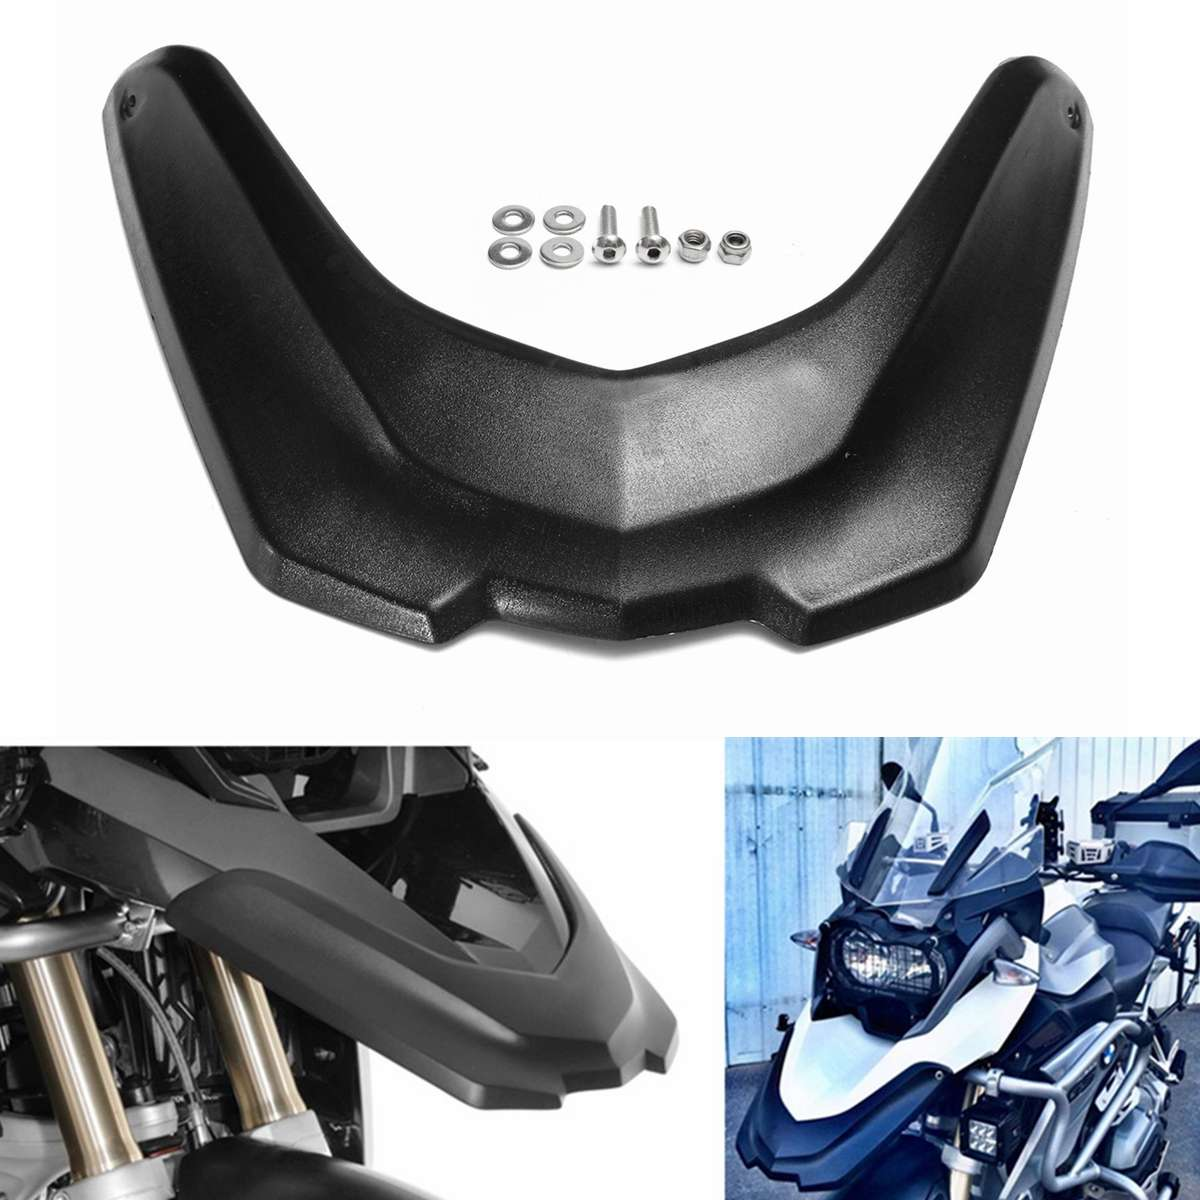 New Front Motorcycle For Fender Mudguard Mud Beak Extension Extender Wheel Cover Cowl For BMW R1200GS LC 2013-2016New Front Motorcycle For Fender Mudguard Mud Beak Extension Extender Wheel Cover Cowl For BMW R1200GS LC 2013-2016